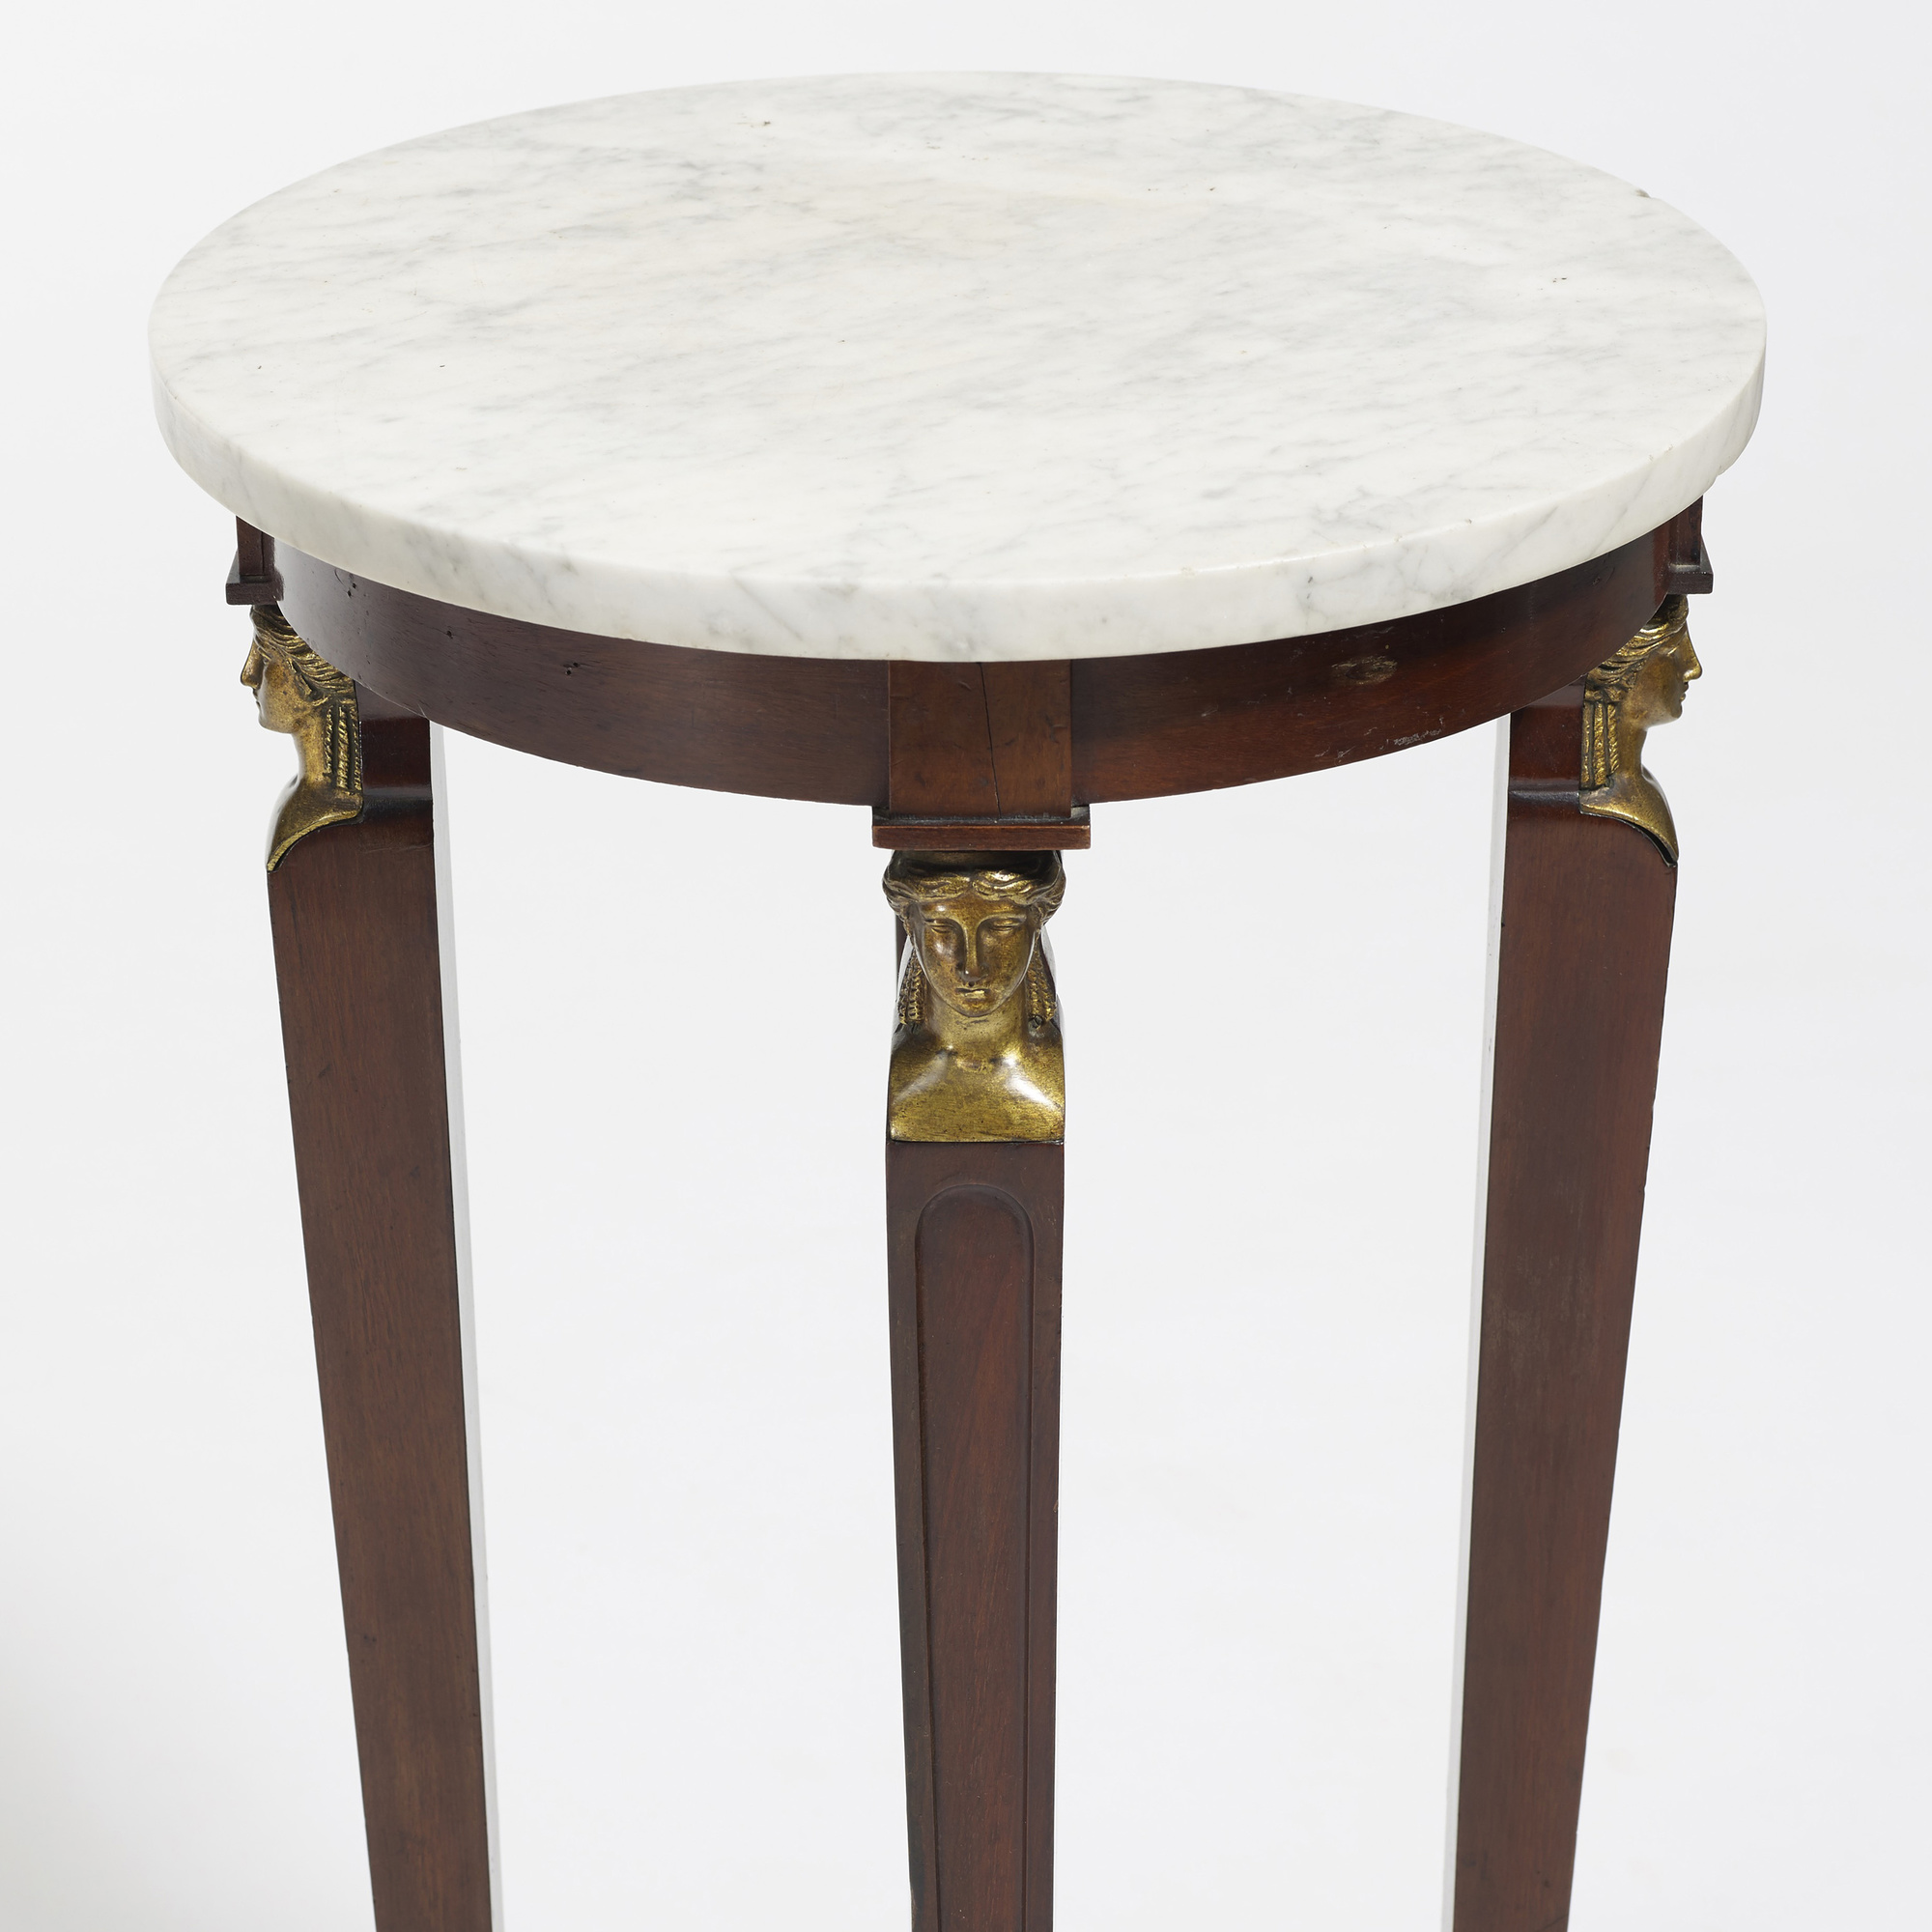 276: Empire / occasional table (2 of 2)